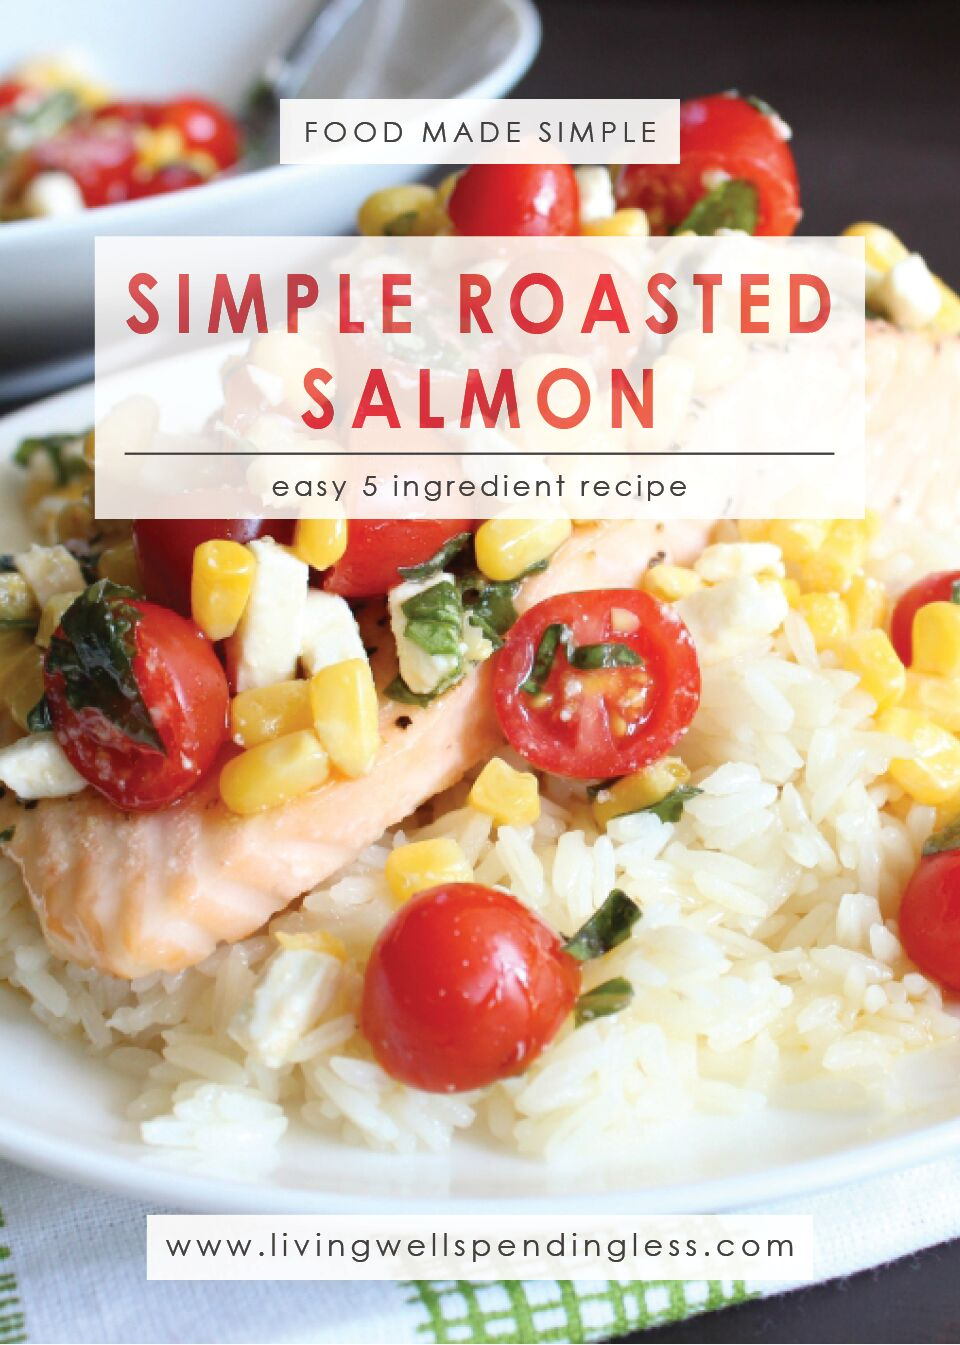 Simple Roasted Salmon | Food Made Simple | Easy Fish Recipe | 5 Ingredient Recipe | Quick & Easy Fish Recipe | 20 Minute Meal